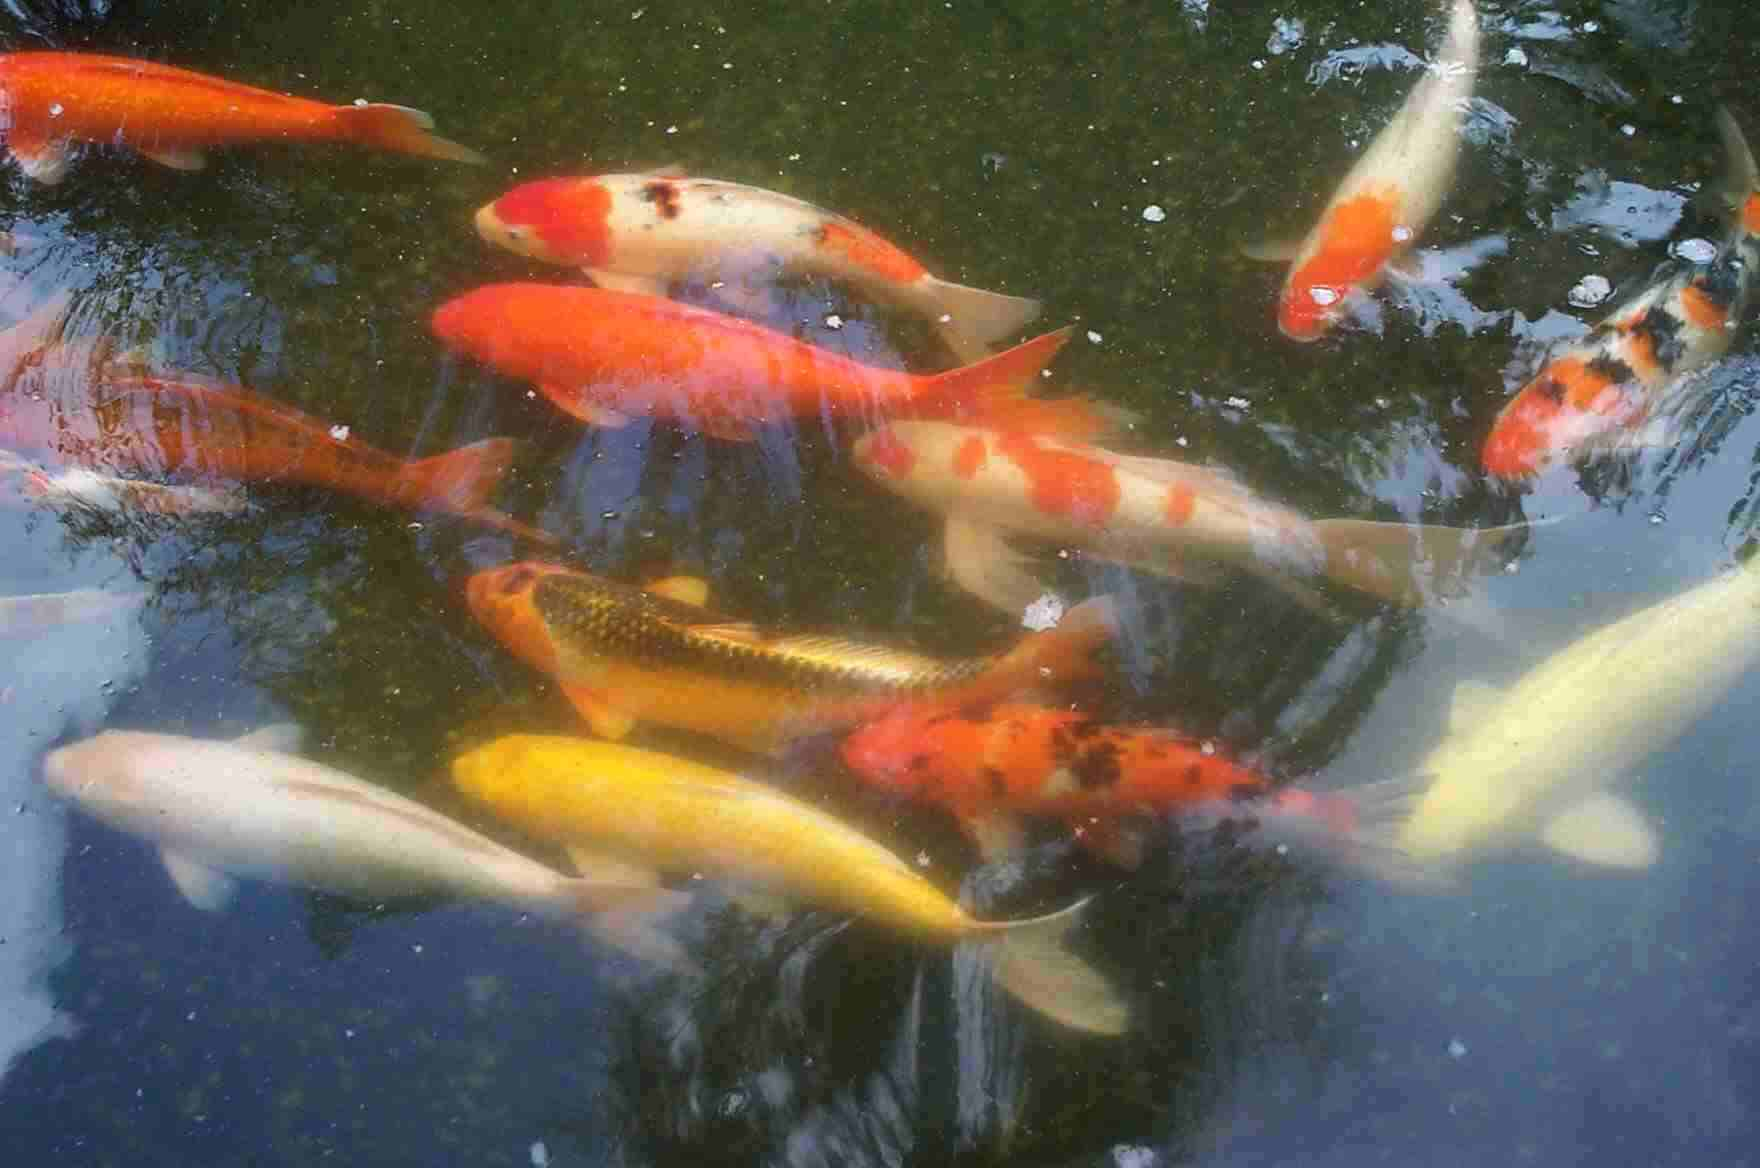 Discus fish for sale 8 amazing giant koi fish for sale for Koi fish net